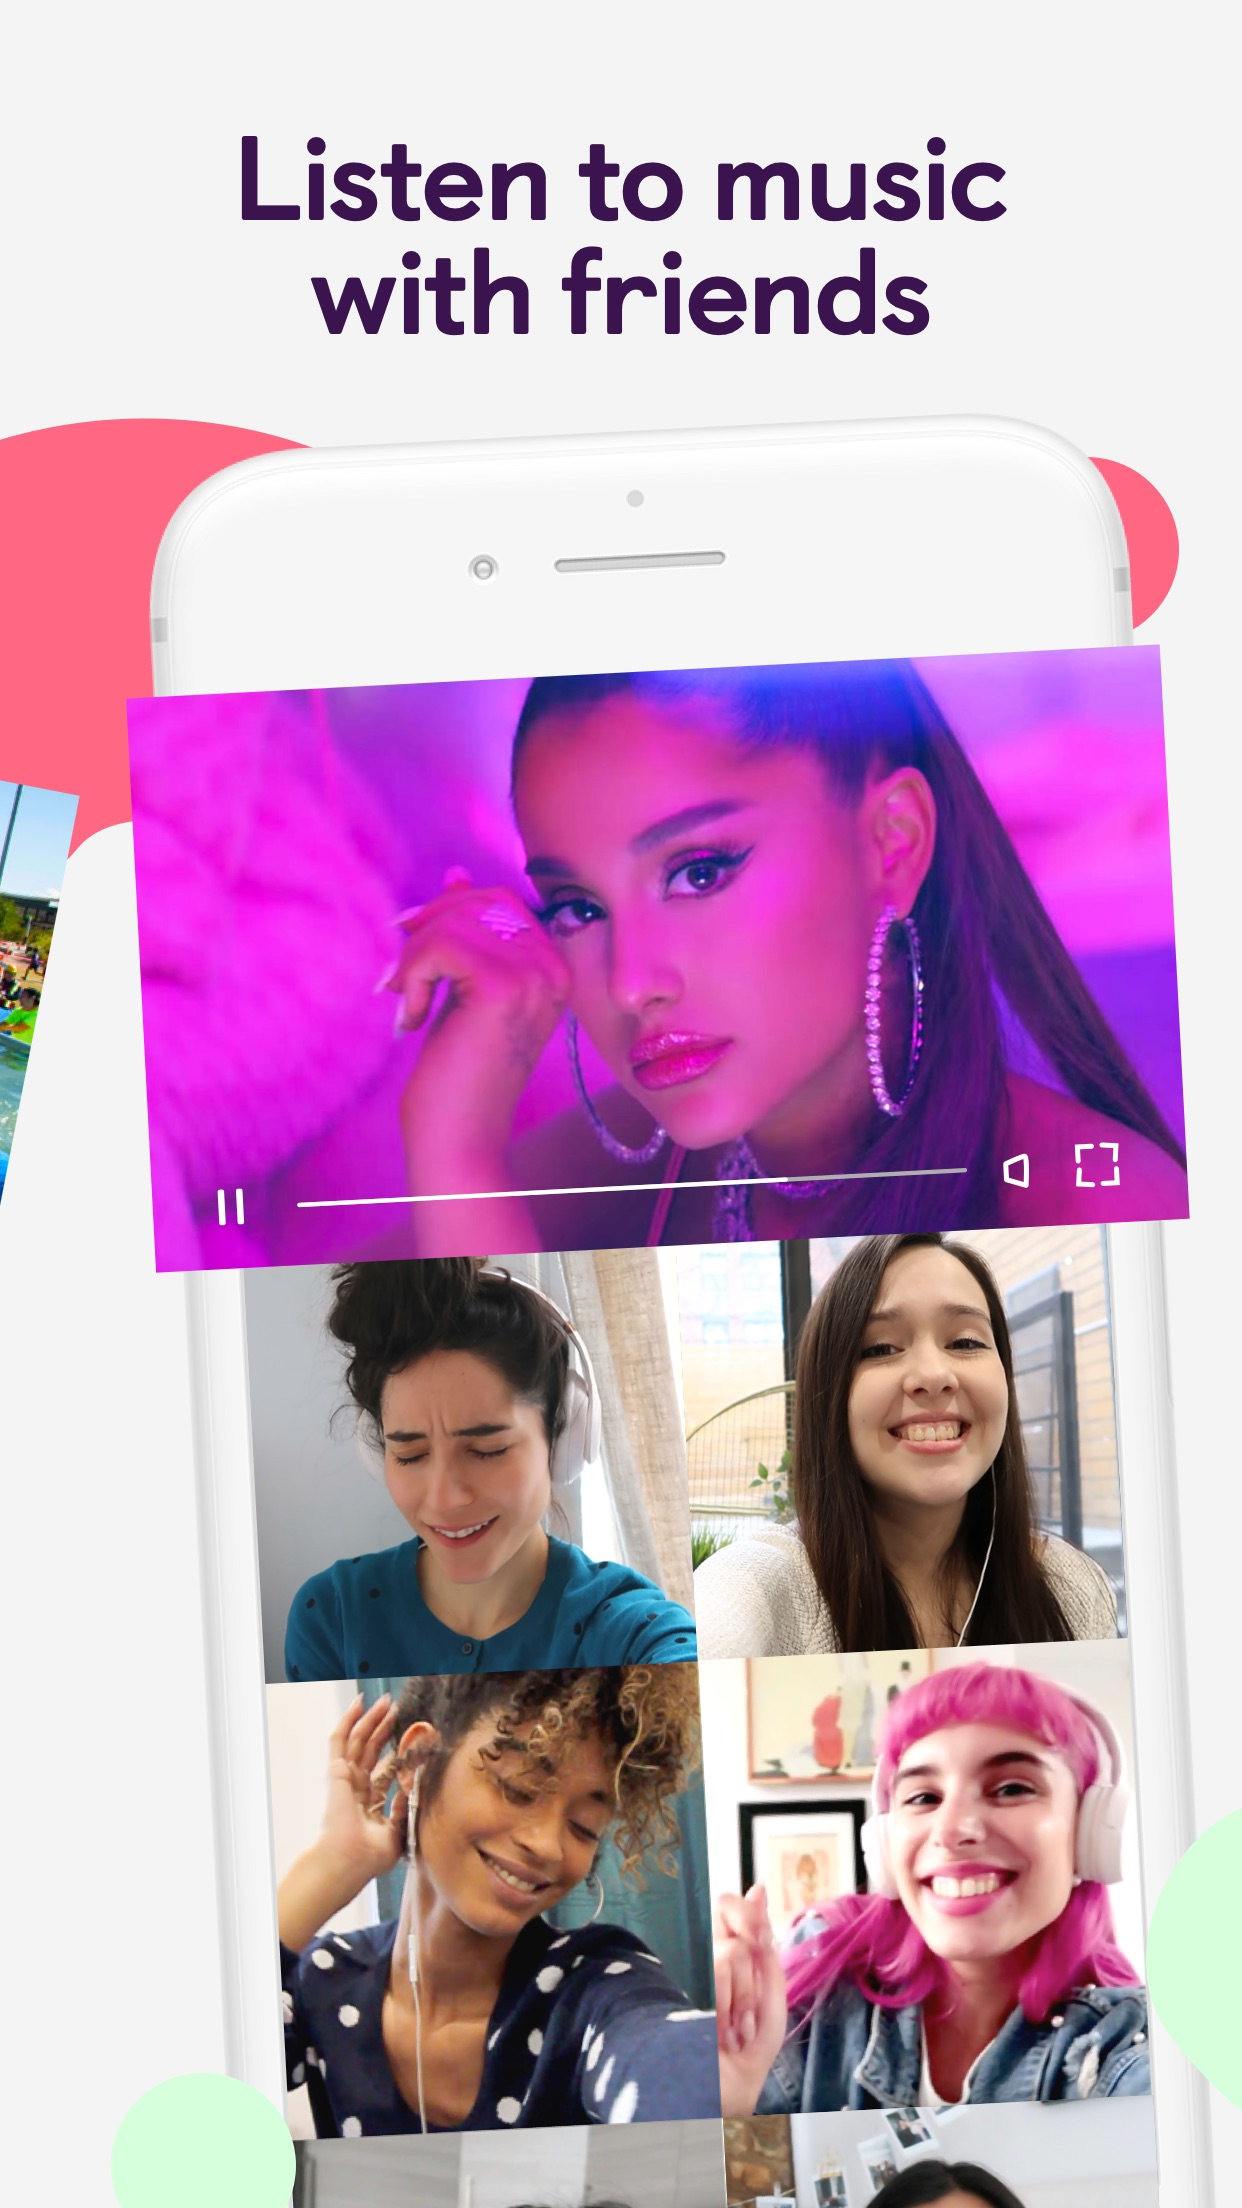 Airtime: Watch Videos Together Screenshot